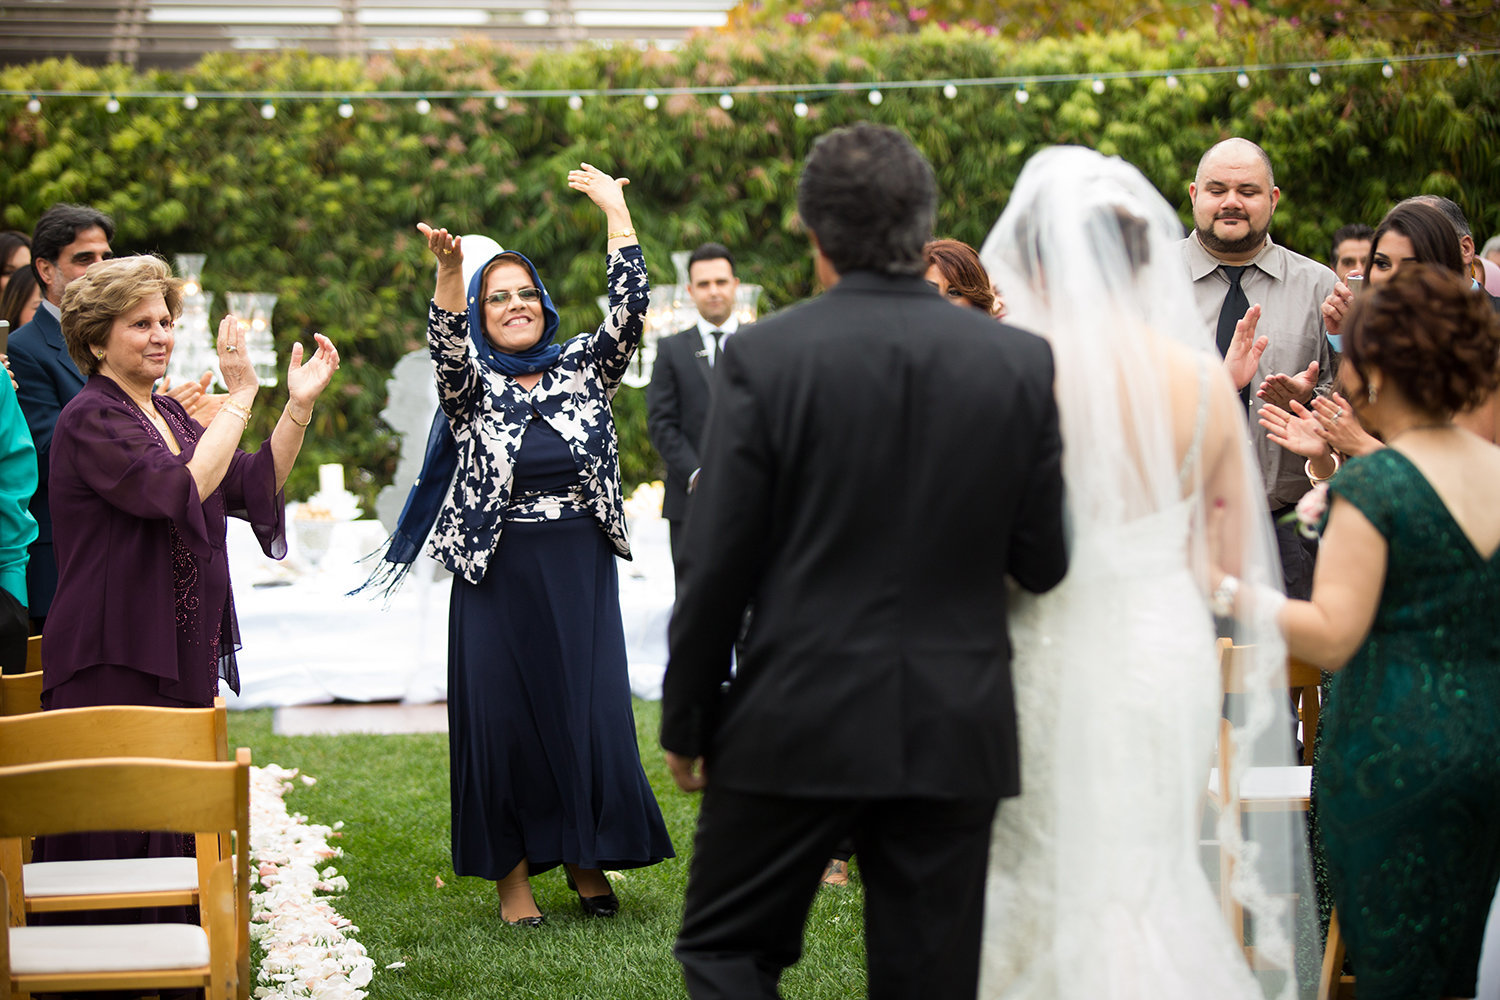 The beginning of a Persian wedding celebration